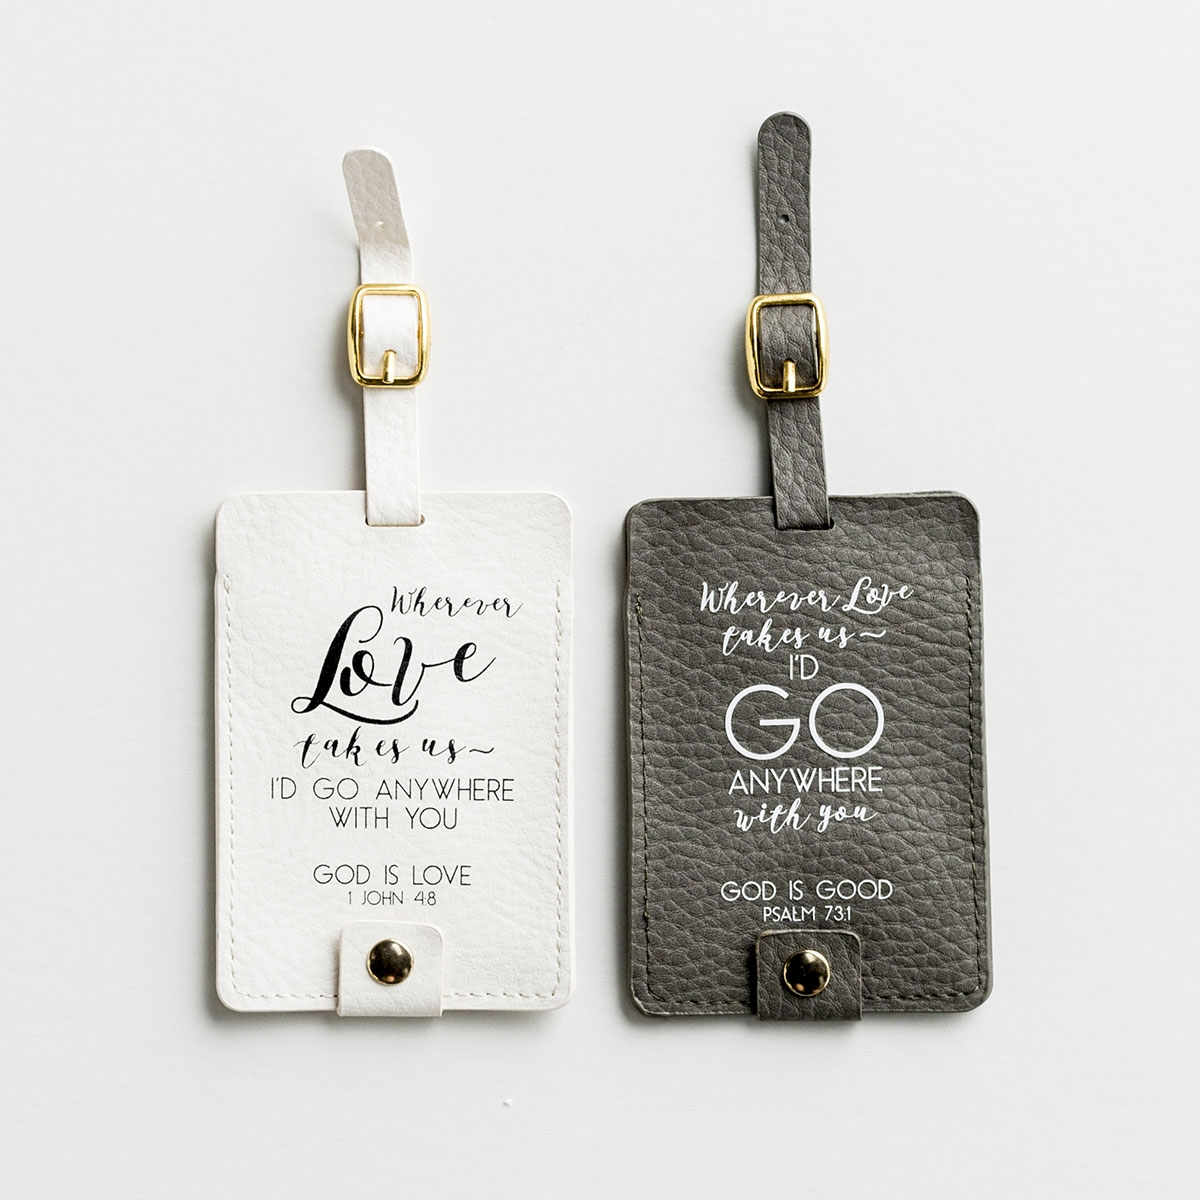 I'd Go Anywhere with You - Luggage Tag Set